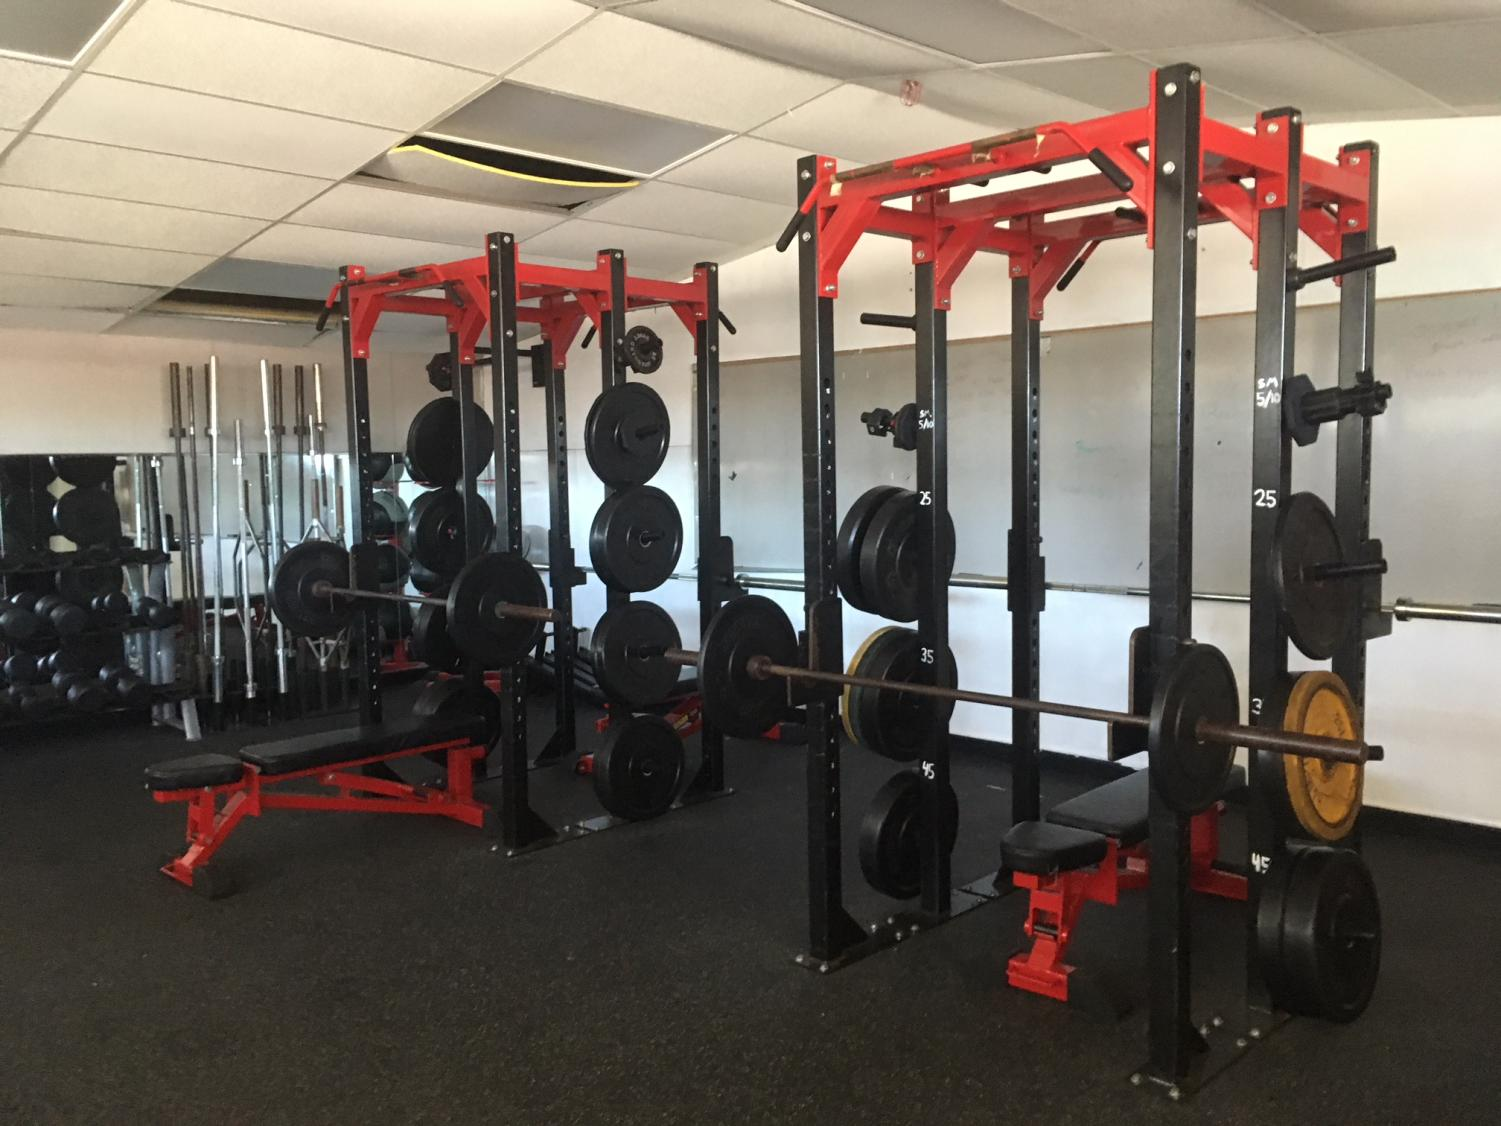 The+old+racks+are+prepped+for+a+team+workout+with+a+whiteboard+designed+to+help+team+lifting+sessions